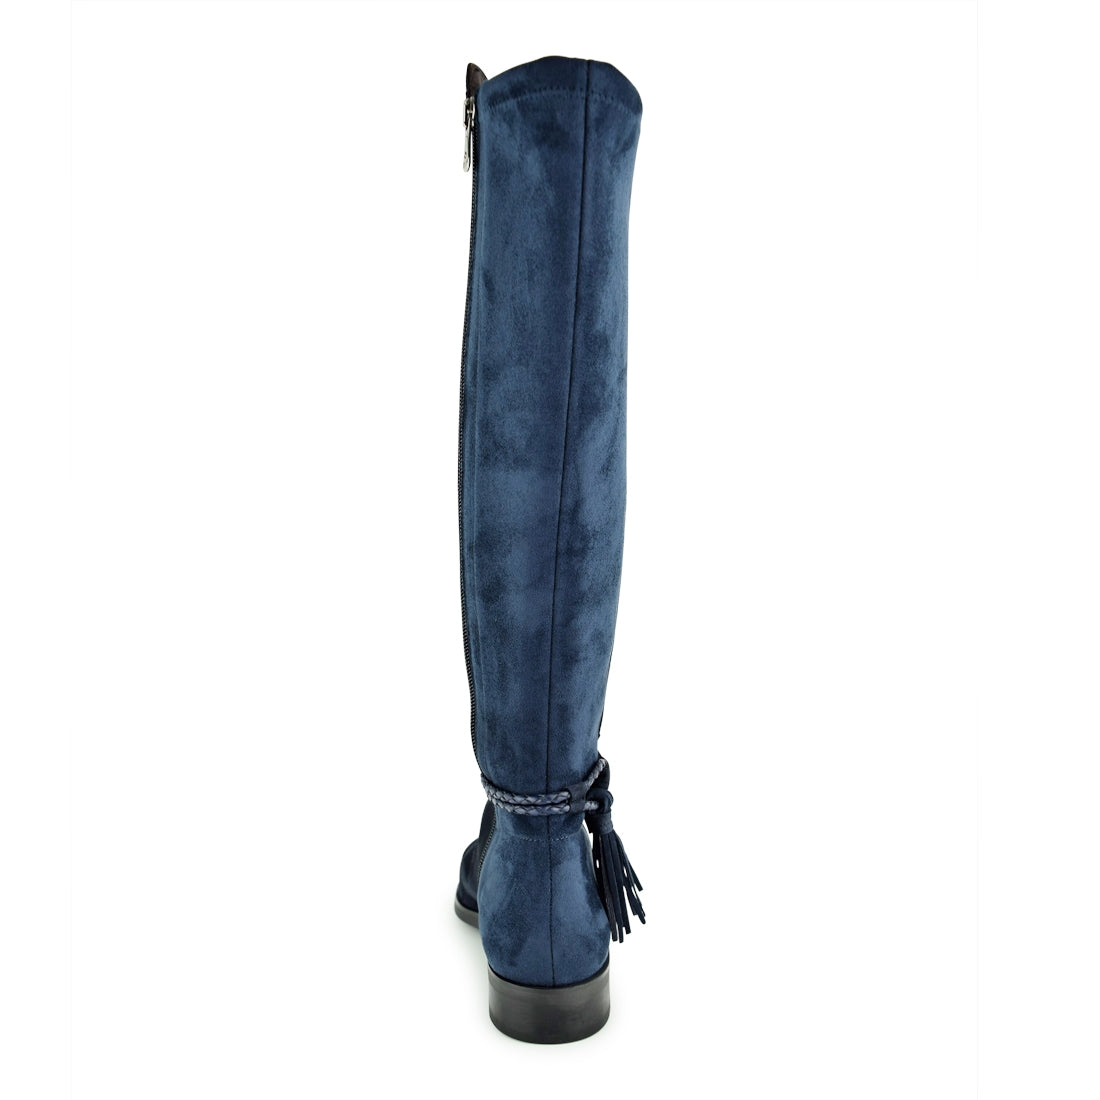 NERIDA - Dansi Long Boots Navy Suede